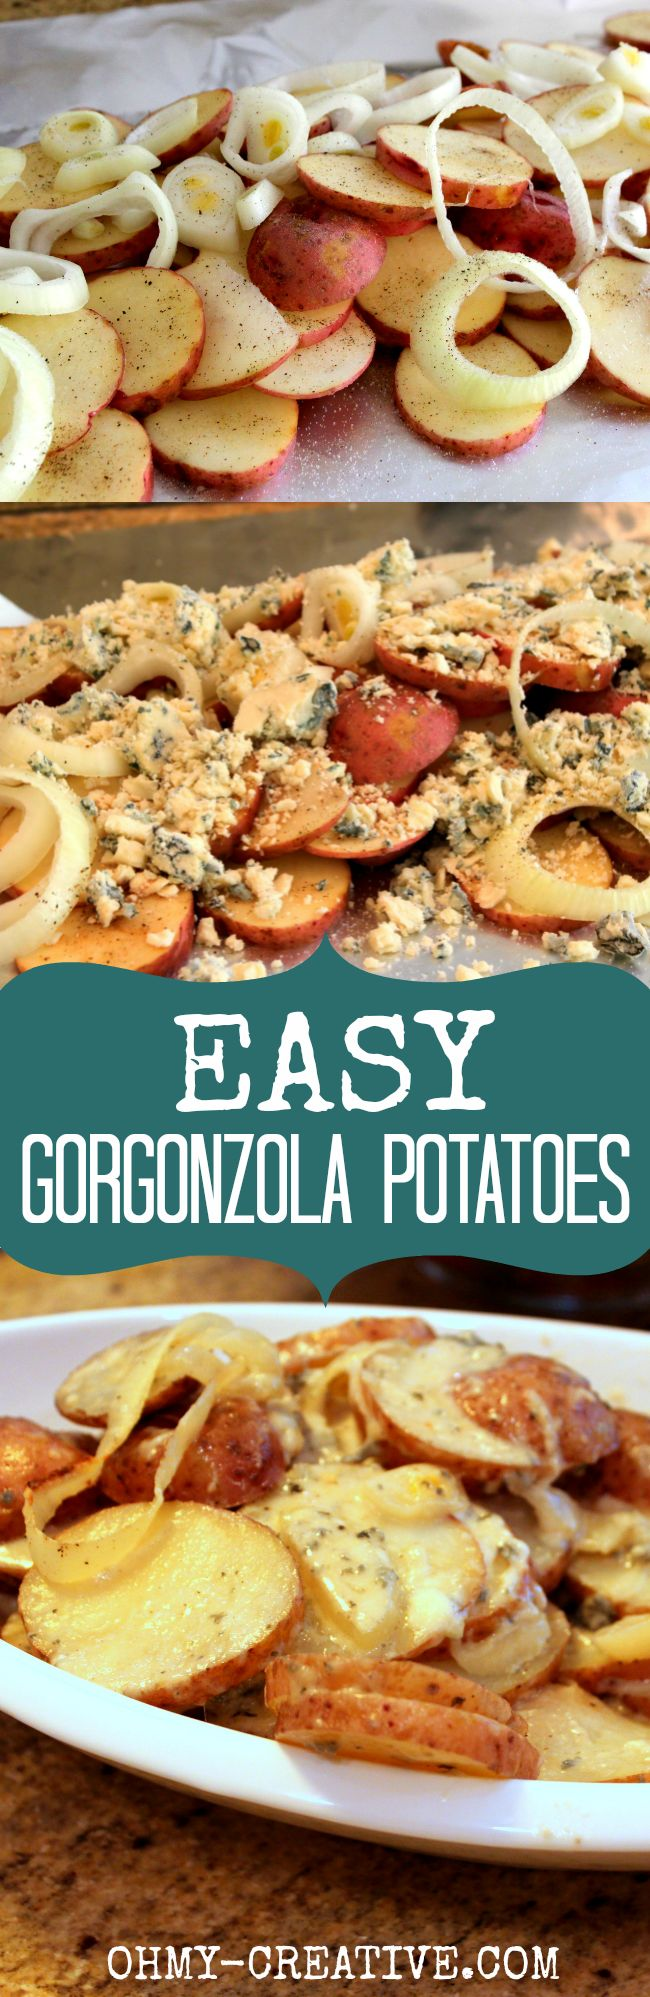 This Easy Gorgonzola Potatoes is one of my favorite side dishes! Quick to prepare, wrap in foil and pop them in the oven. Gooey cheese goodness! |  OHMY-CREATIVE.COM